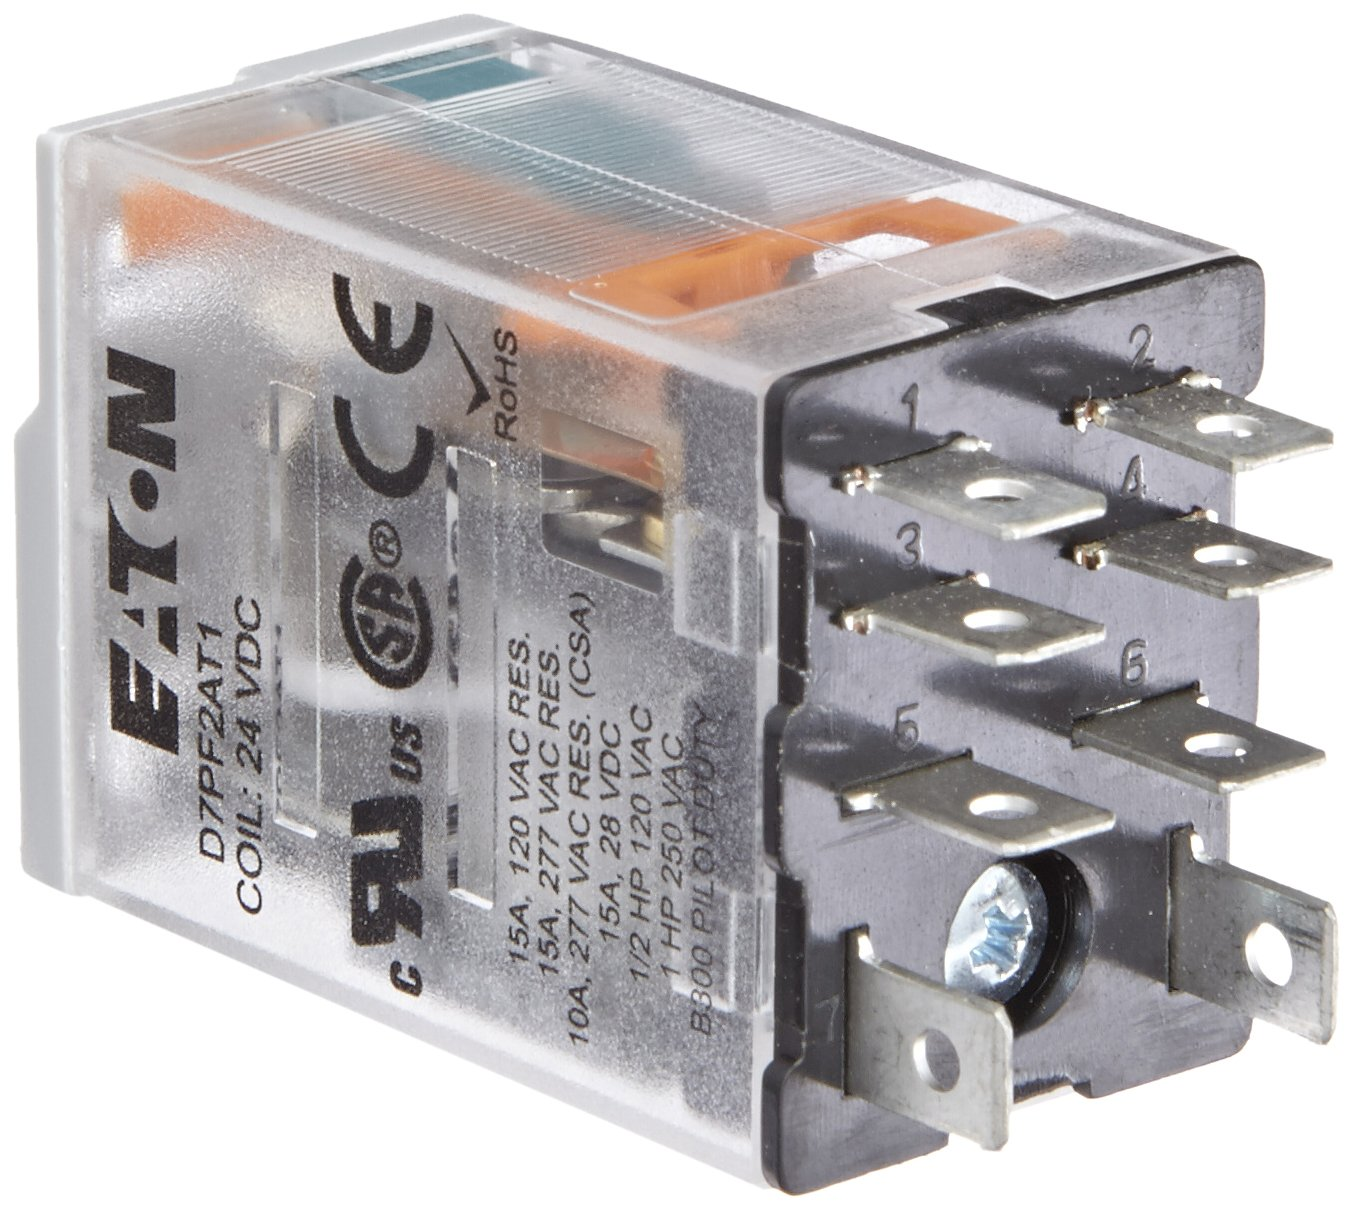 Eaton D7pf2at1 General Purpose Relay 15a Rated Current Dpdt Relays A Is An Electrically Operated Switch Flowing Contact Configuration 24vdc Coil Voltage 650ohm Resistance Electronic